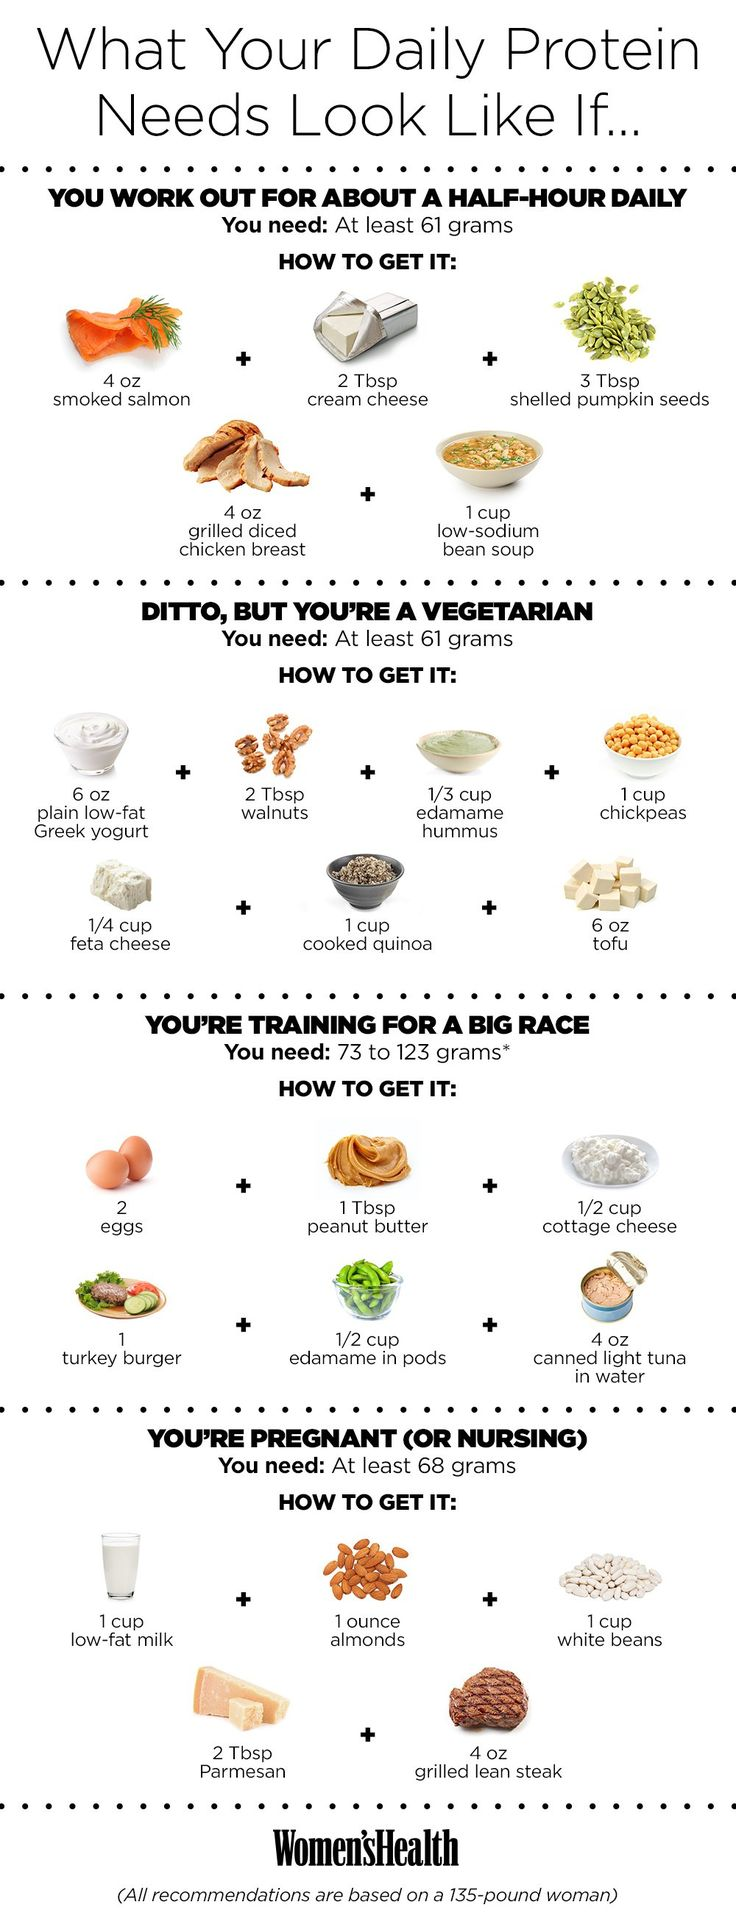 The Big Protein Mistake You're Probably Making  http://www.womenshealthmag.com/food/protein-mistake?cid=NL_WHDD_-_092116_ProteinMistake